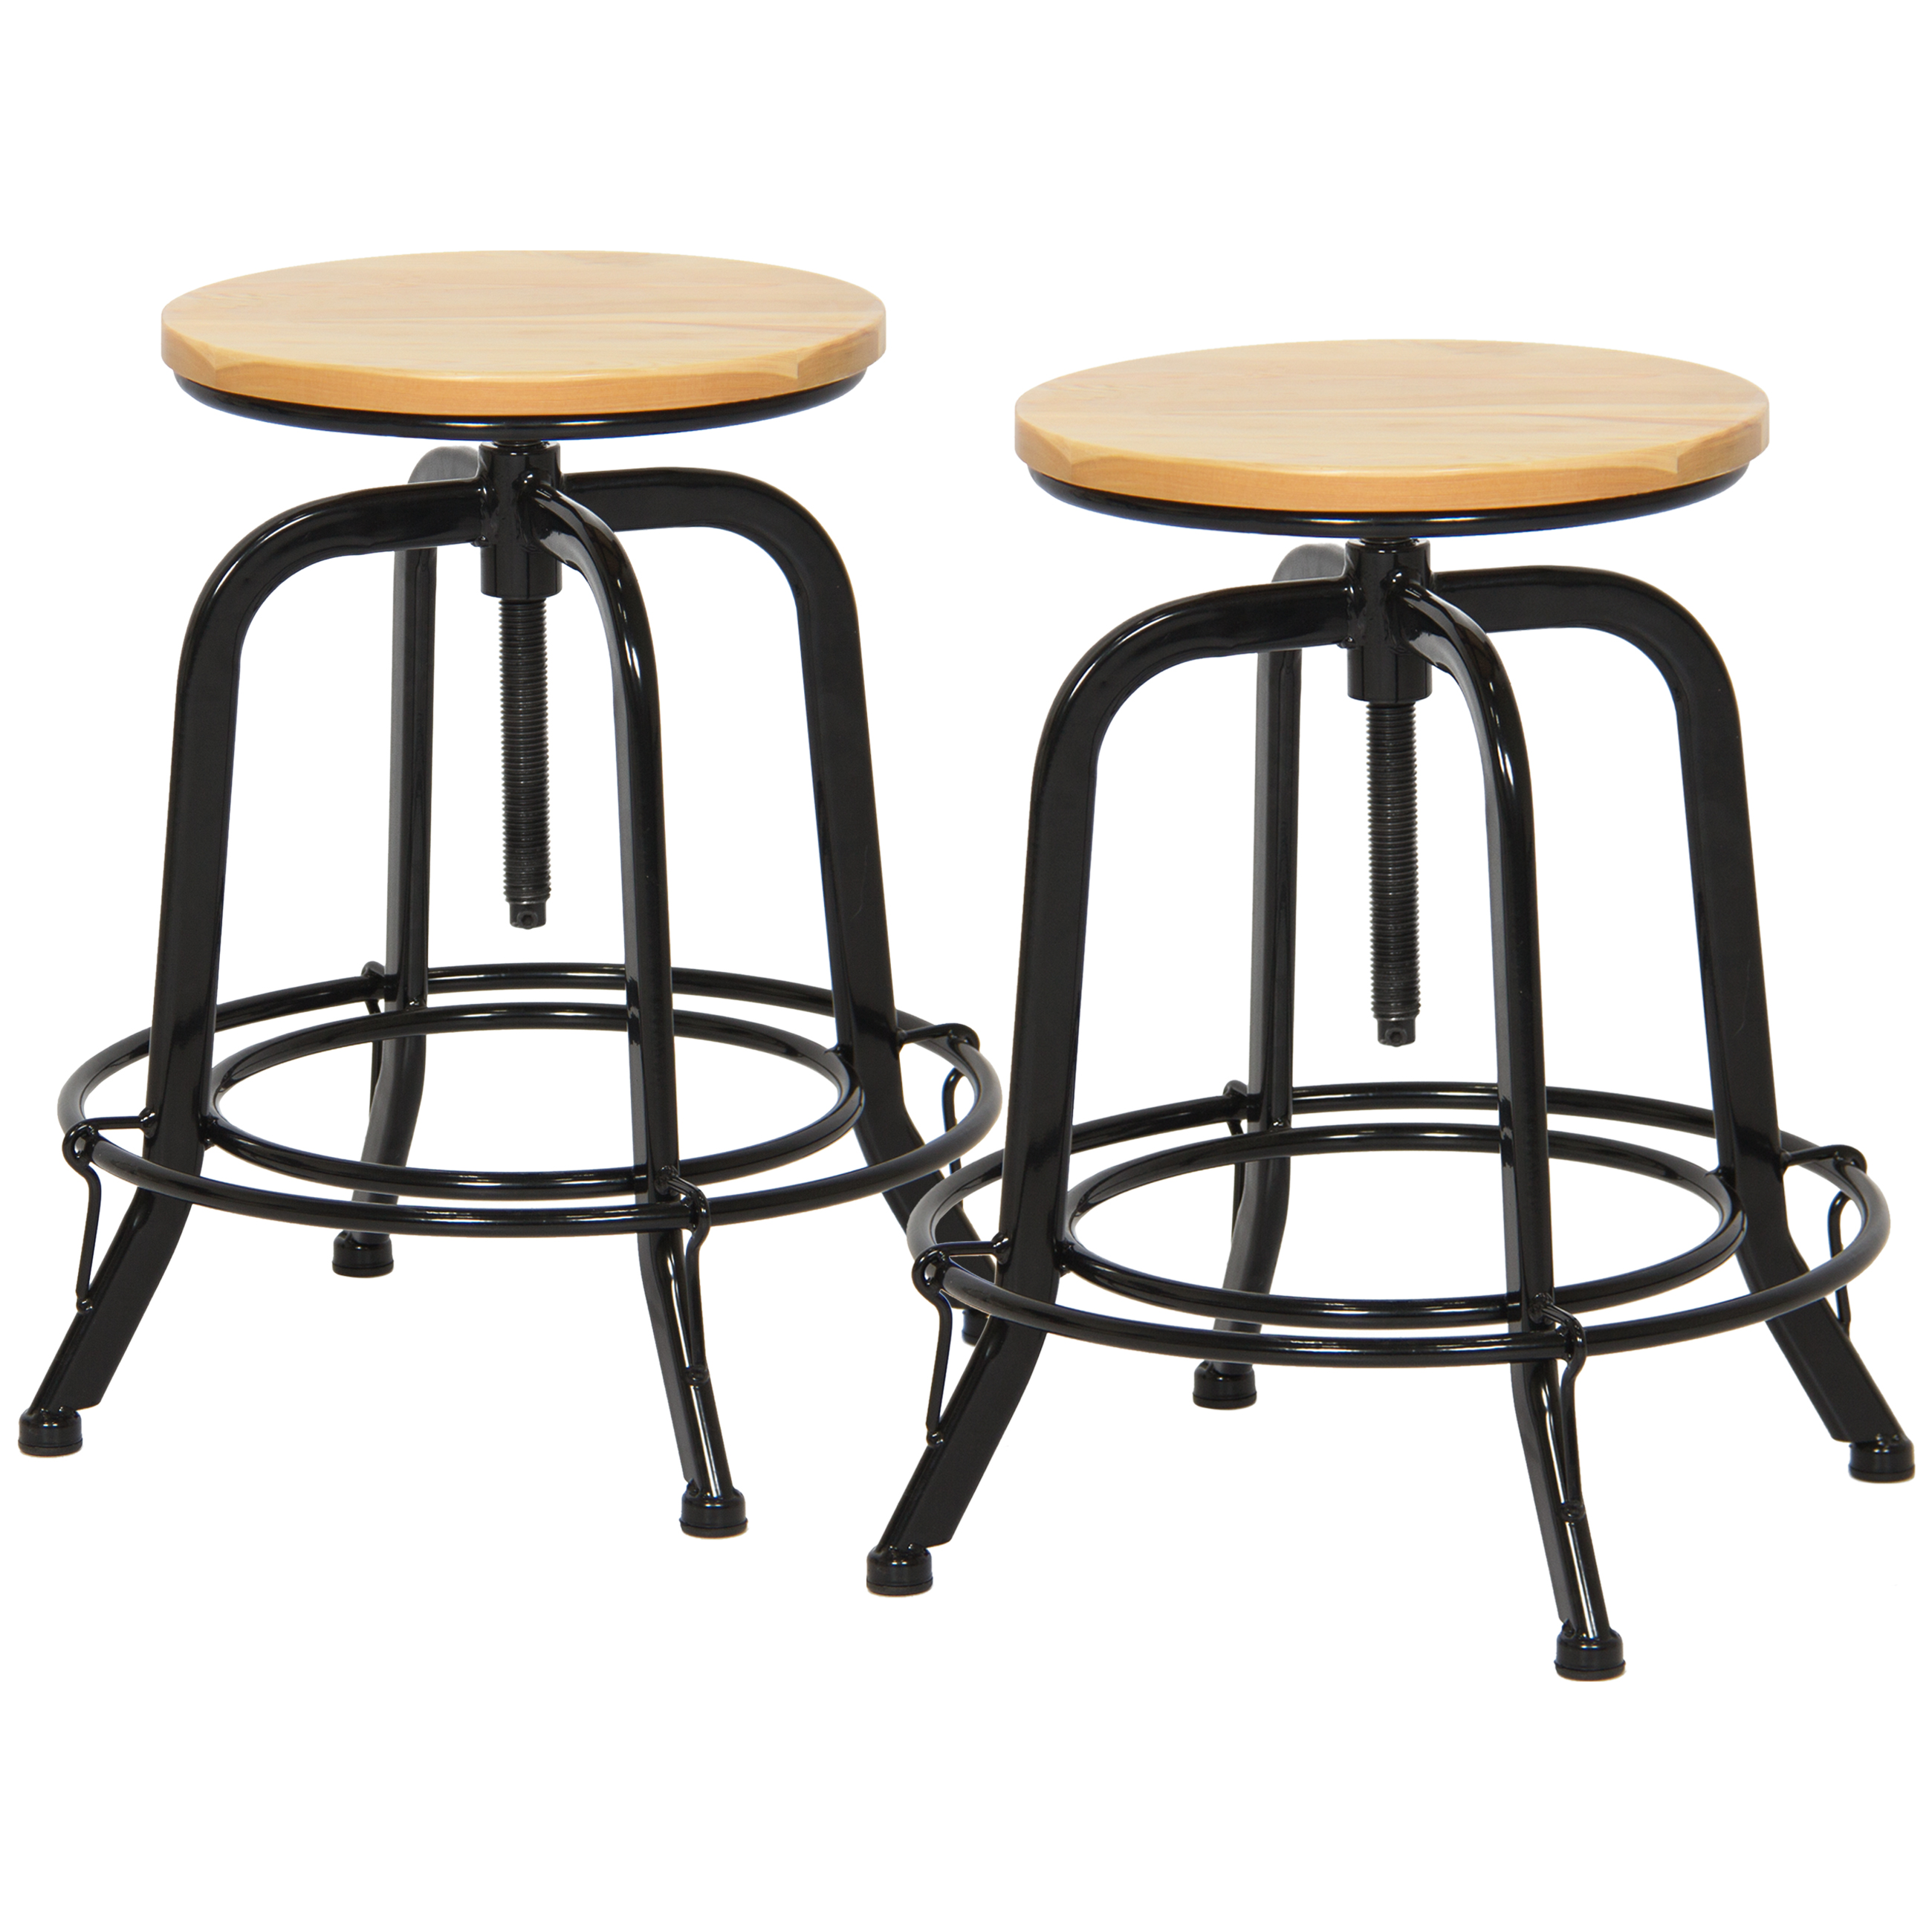 Best Choice Products Set of 2 Round Industrial Height Adjustable Wide Swivel Counter Stools - Black/Natural